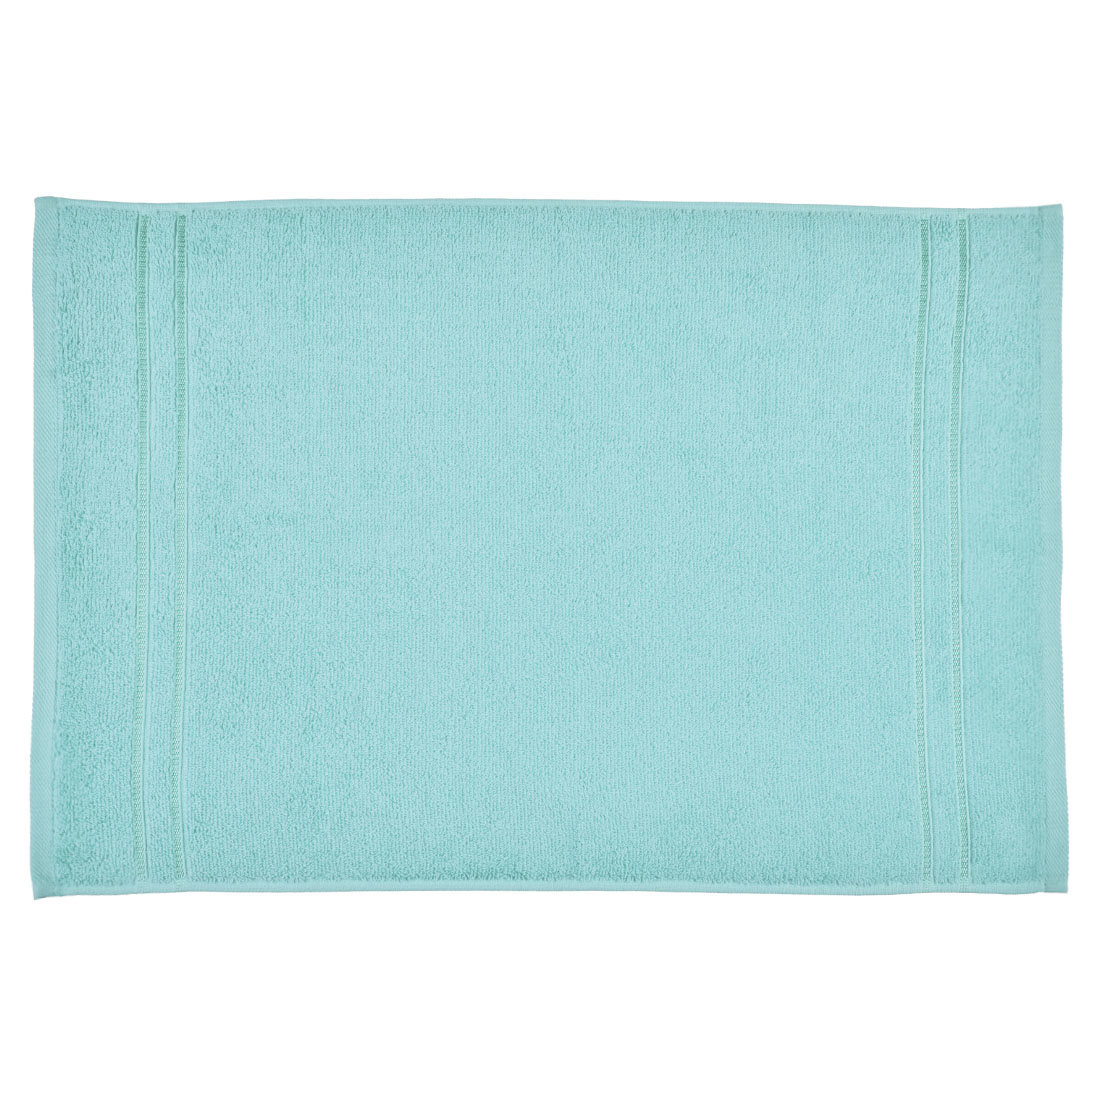 Hand Towel Nora Aqua Cotton Hand Towels in Cotton Colour by Living Essence